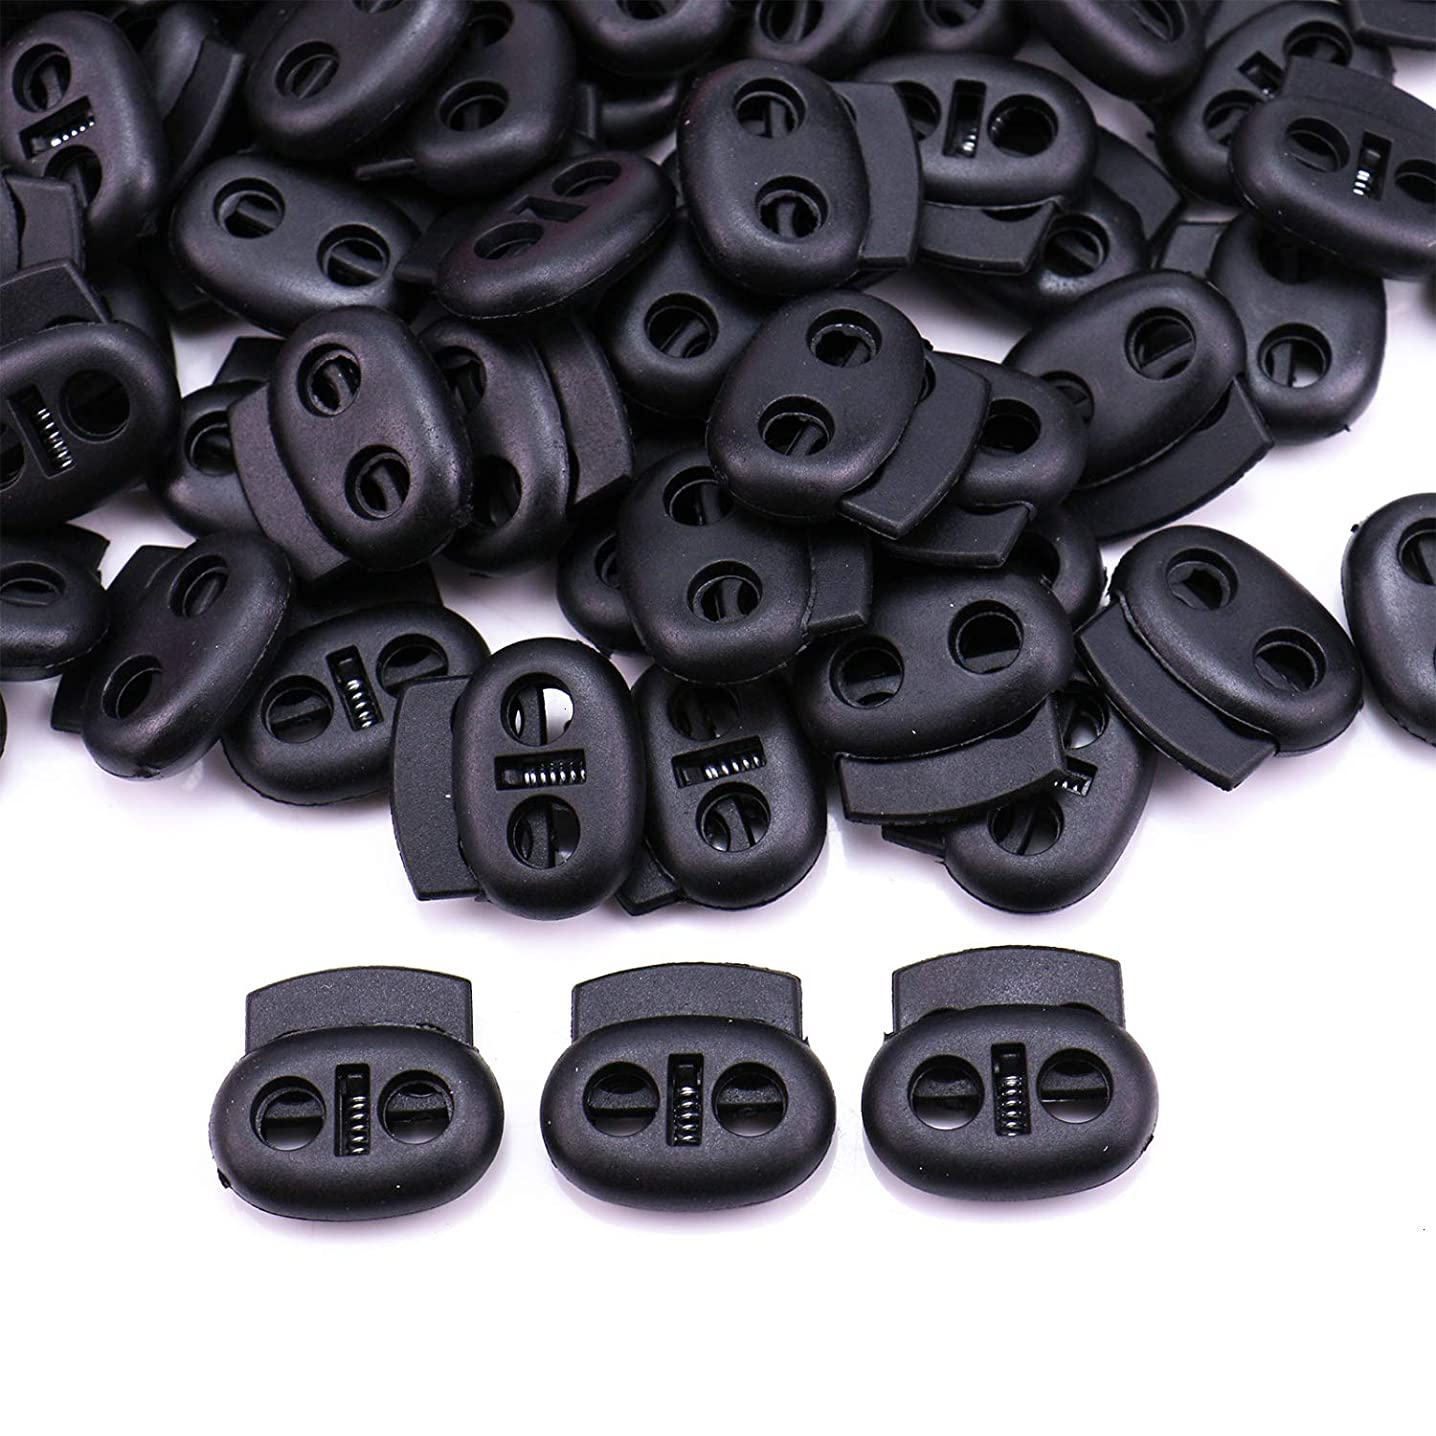 Monrocco 100Pcs Plastic Cord Lock Double Hole Oval Cord Locks End Spring Loaded Round Toggle Clip Stopper Adjuster Fastener (Black)